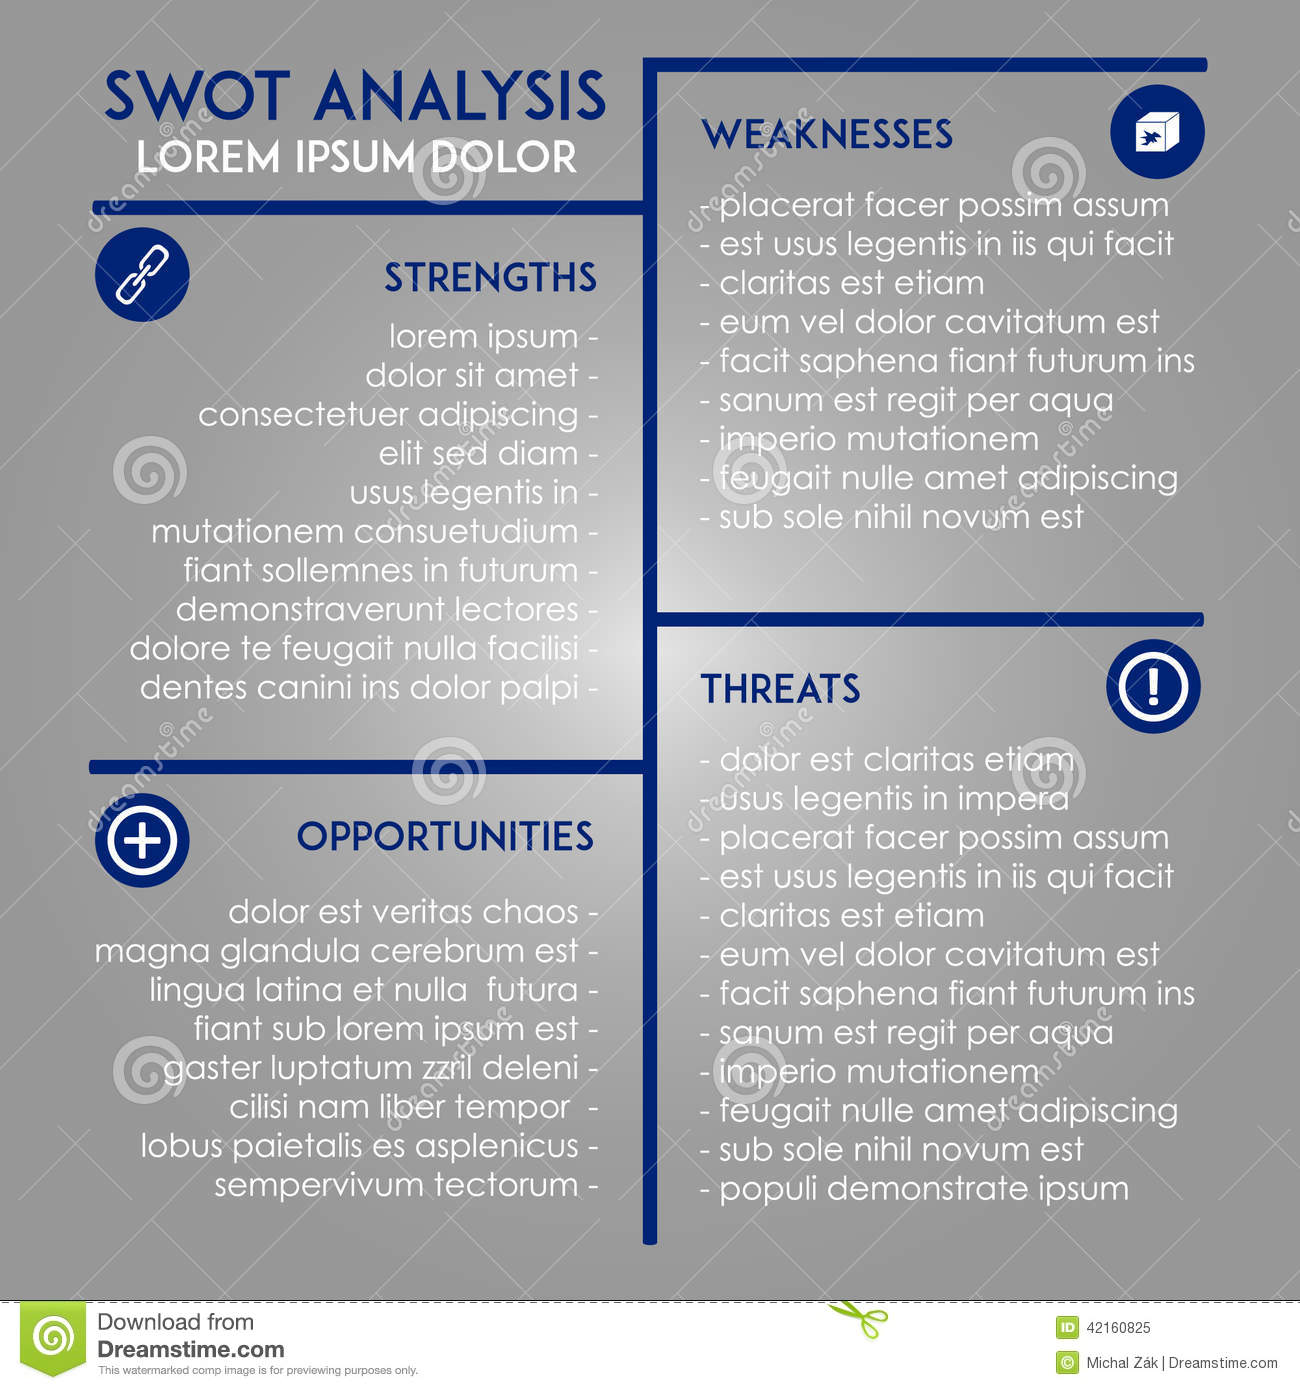 Analysis Template SWOT In Marketing Vector Image 42160825 – Marketing Analysis Template